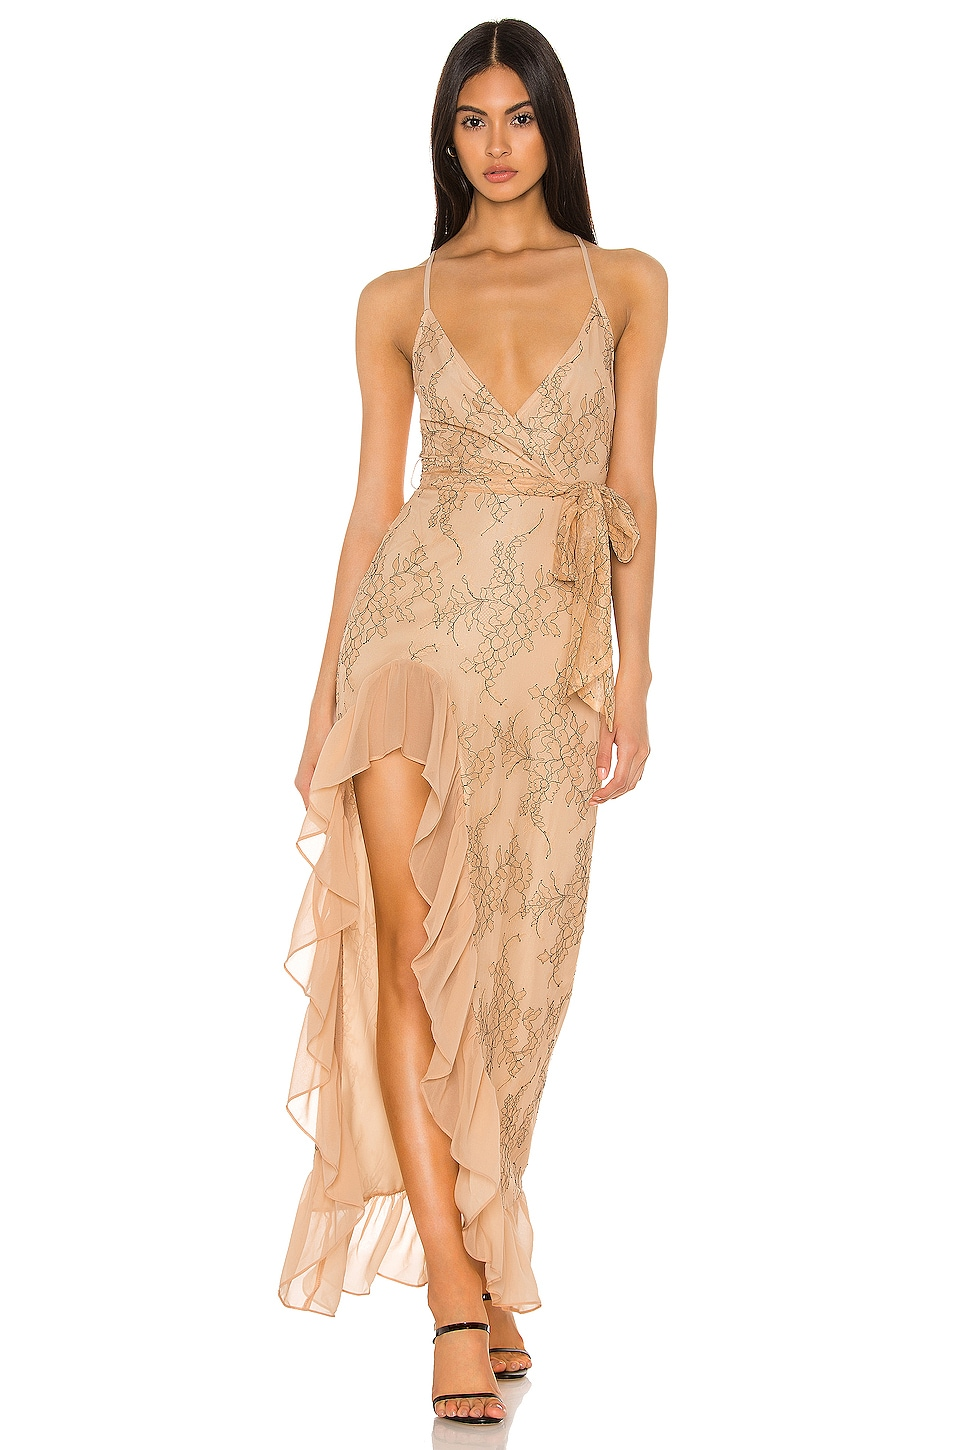 Privacy Please Esperanza Gown in Nude & Black